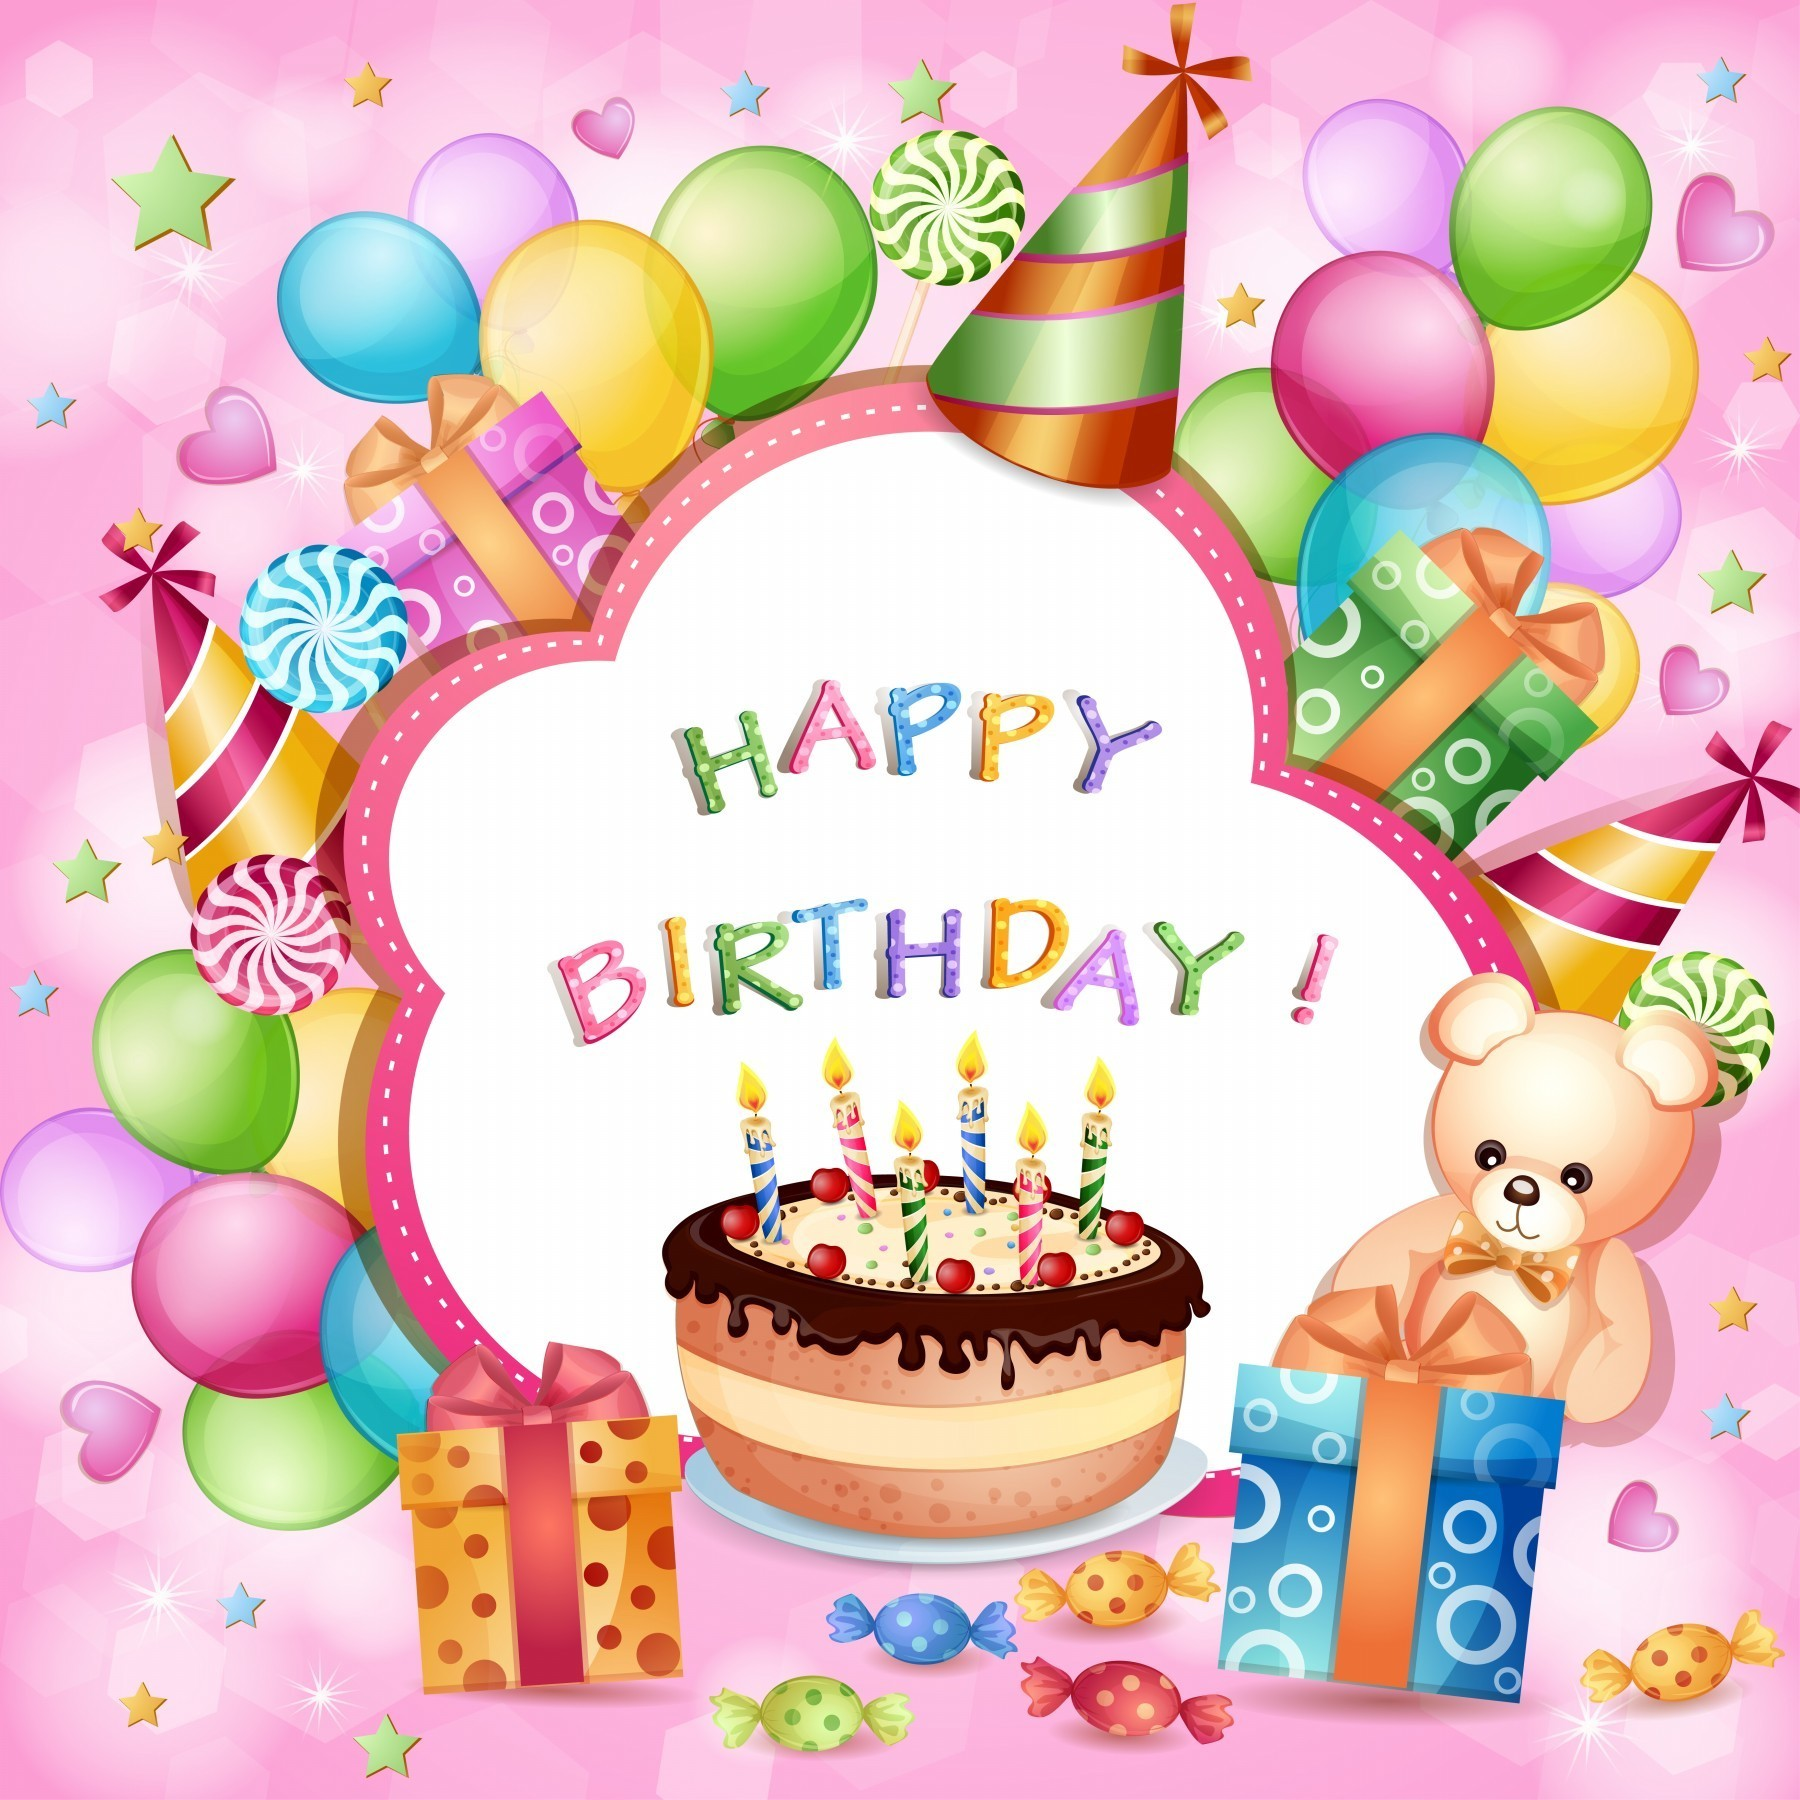 Happy Birthday Ecards Android Apps On Google